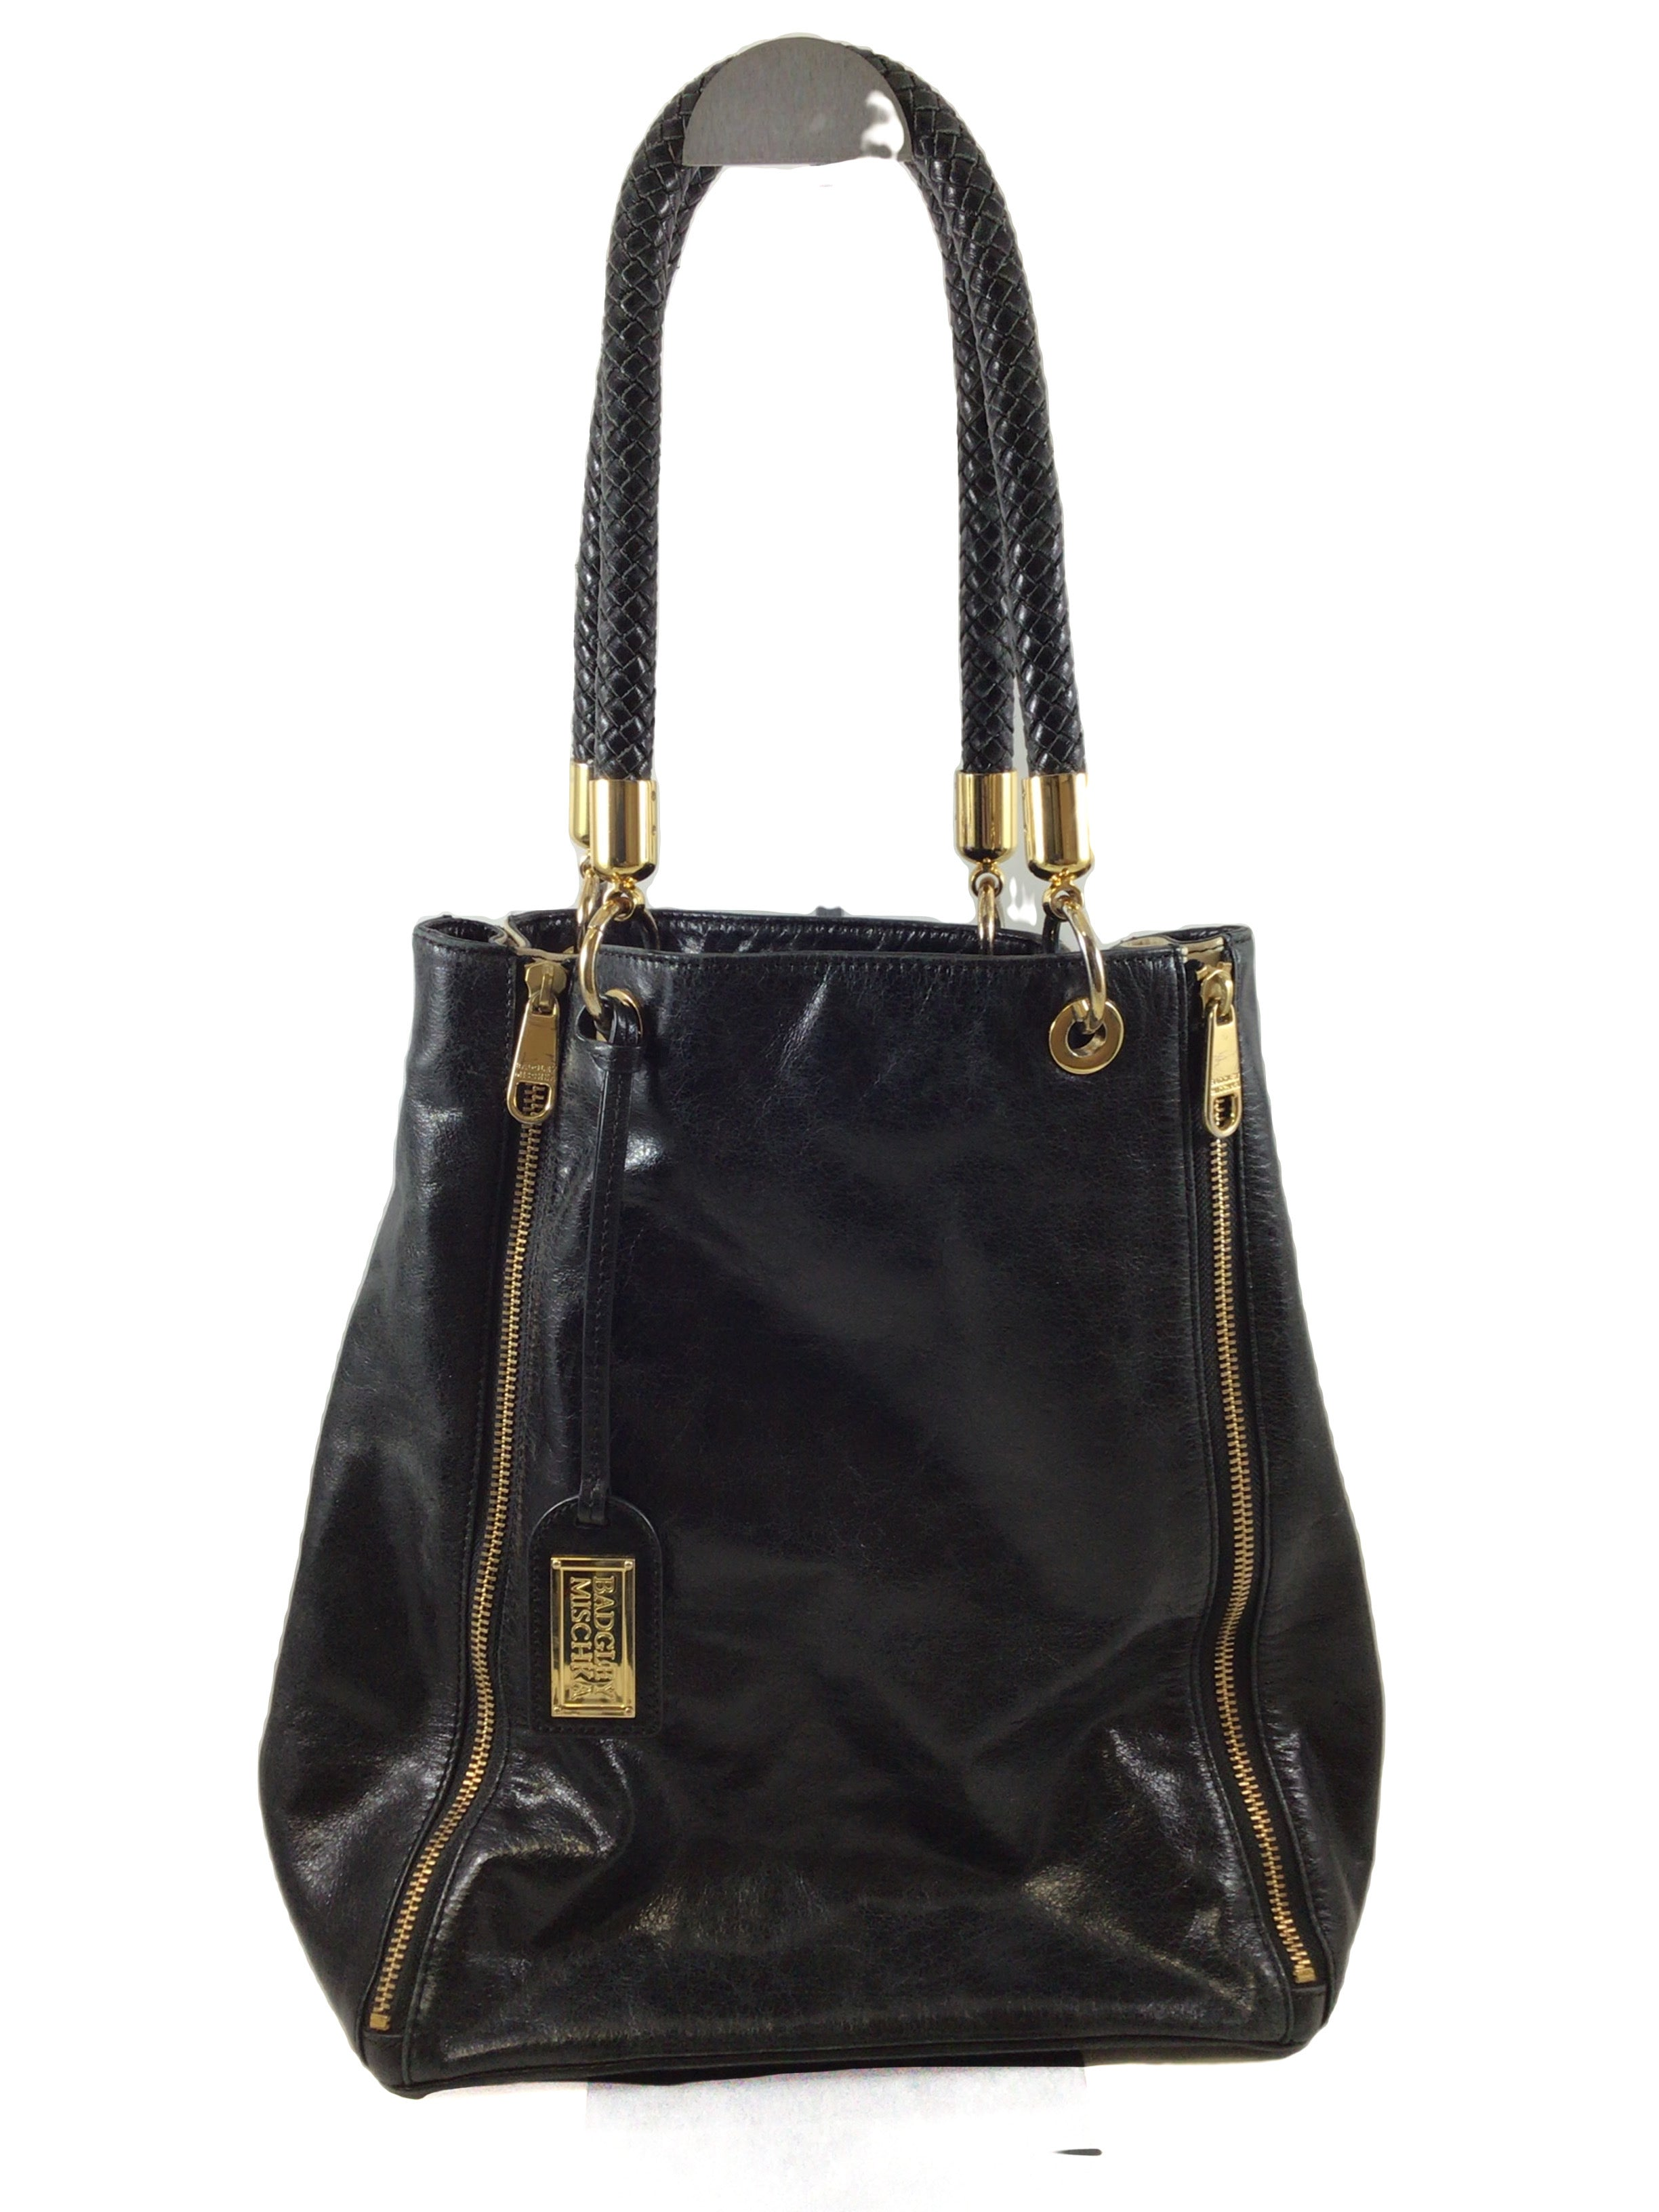 Primary Photo - BRAND: BADGLEY MISCHKA <BR>STYLE: HANDBAG DESIGNER <BR>COLOR: BLACK WHITE <BR>SIZE: LARGE <BR>SKU: 213-213143-9934